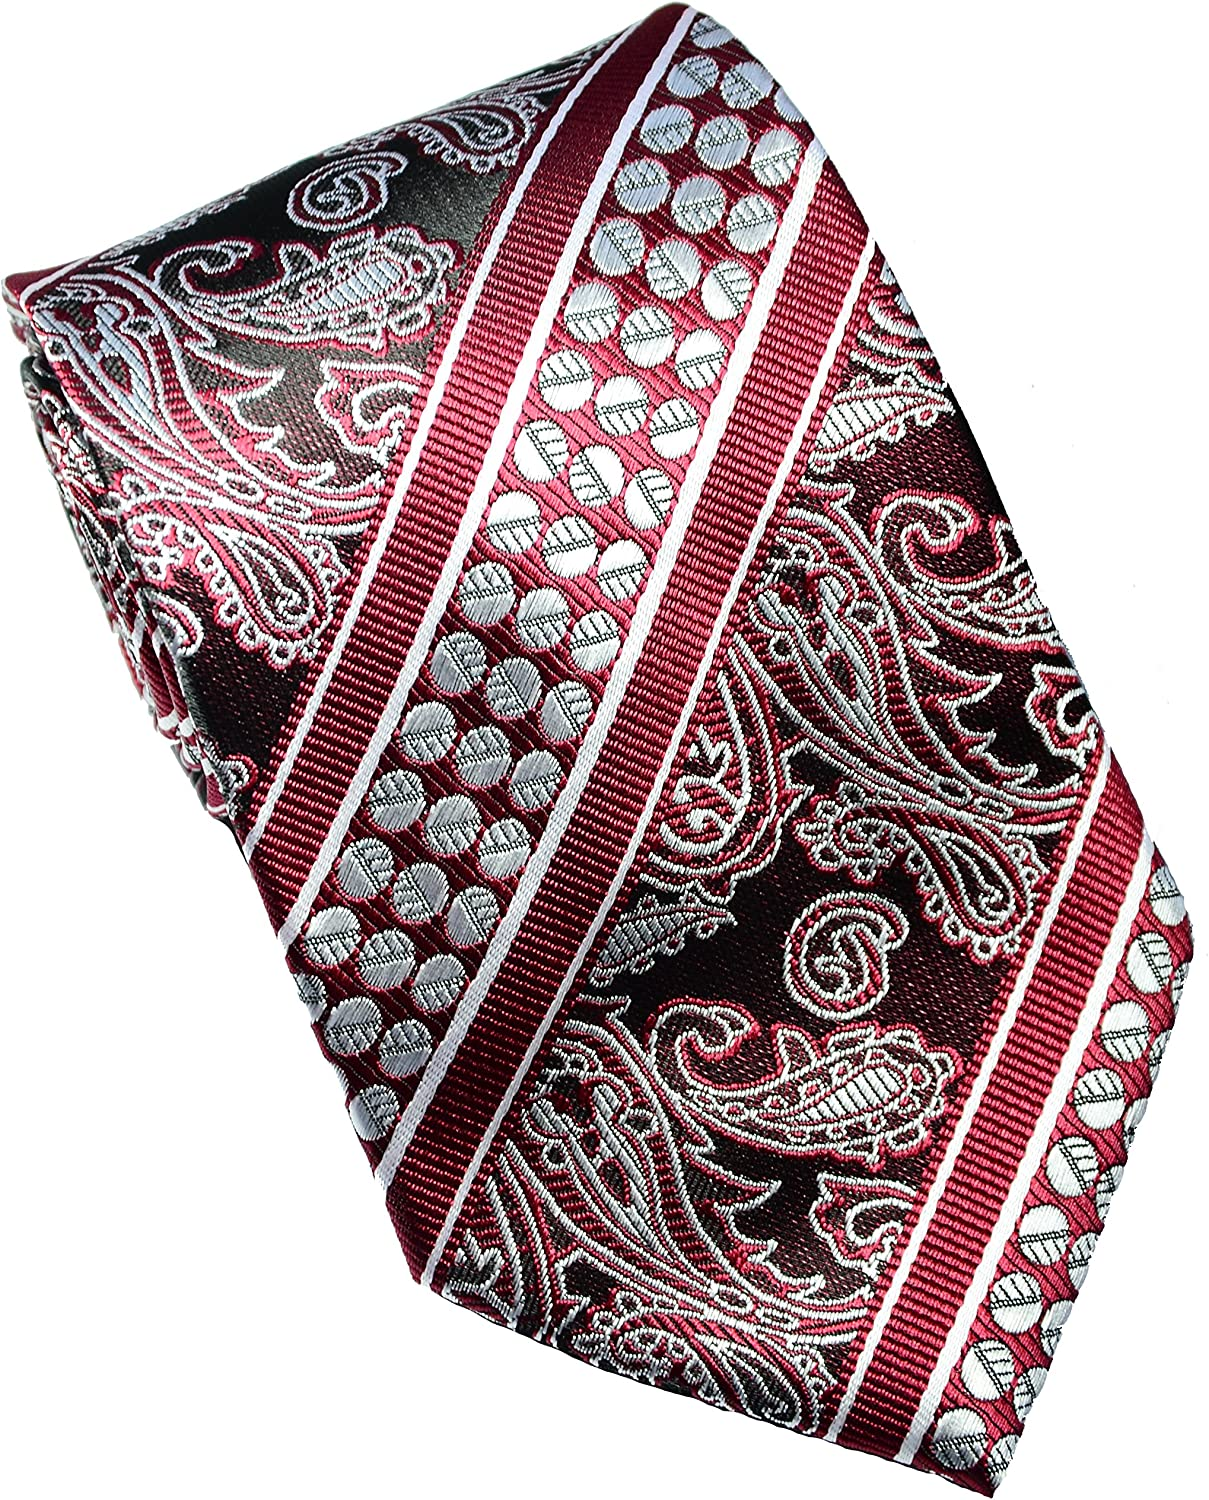 Scott OFFicial mail order Alania High order New Classic 100% Men's Silk Paisley Woven Jacquard